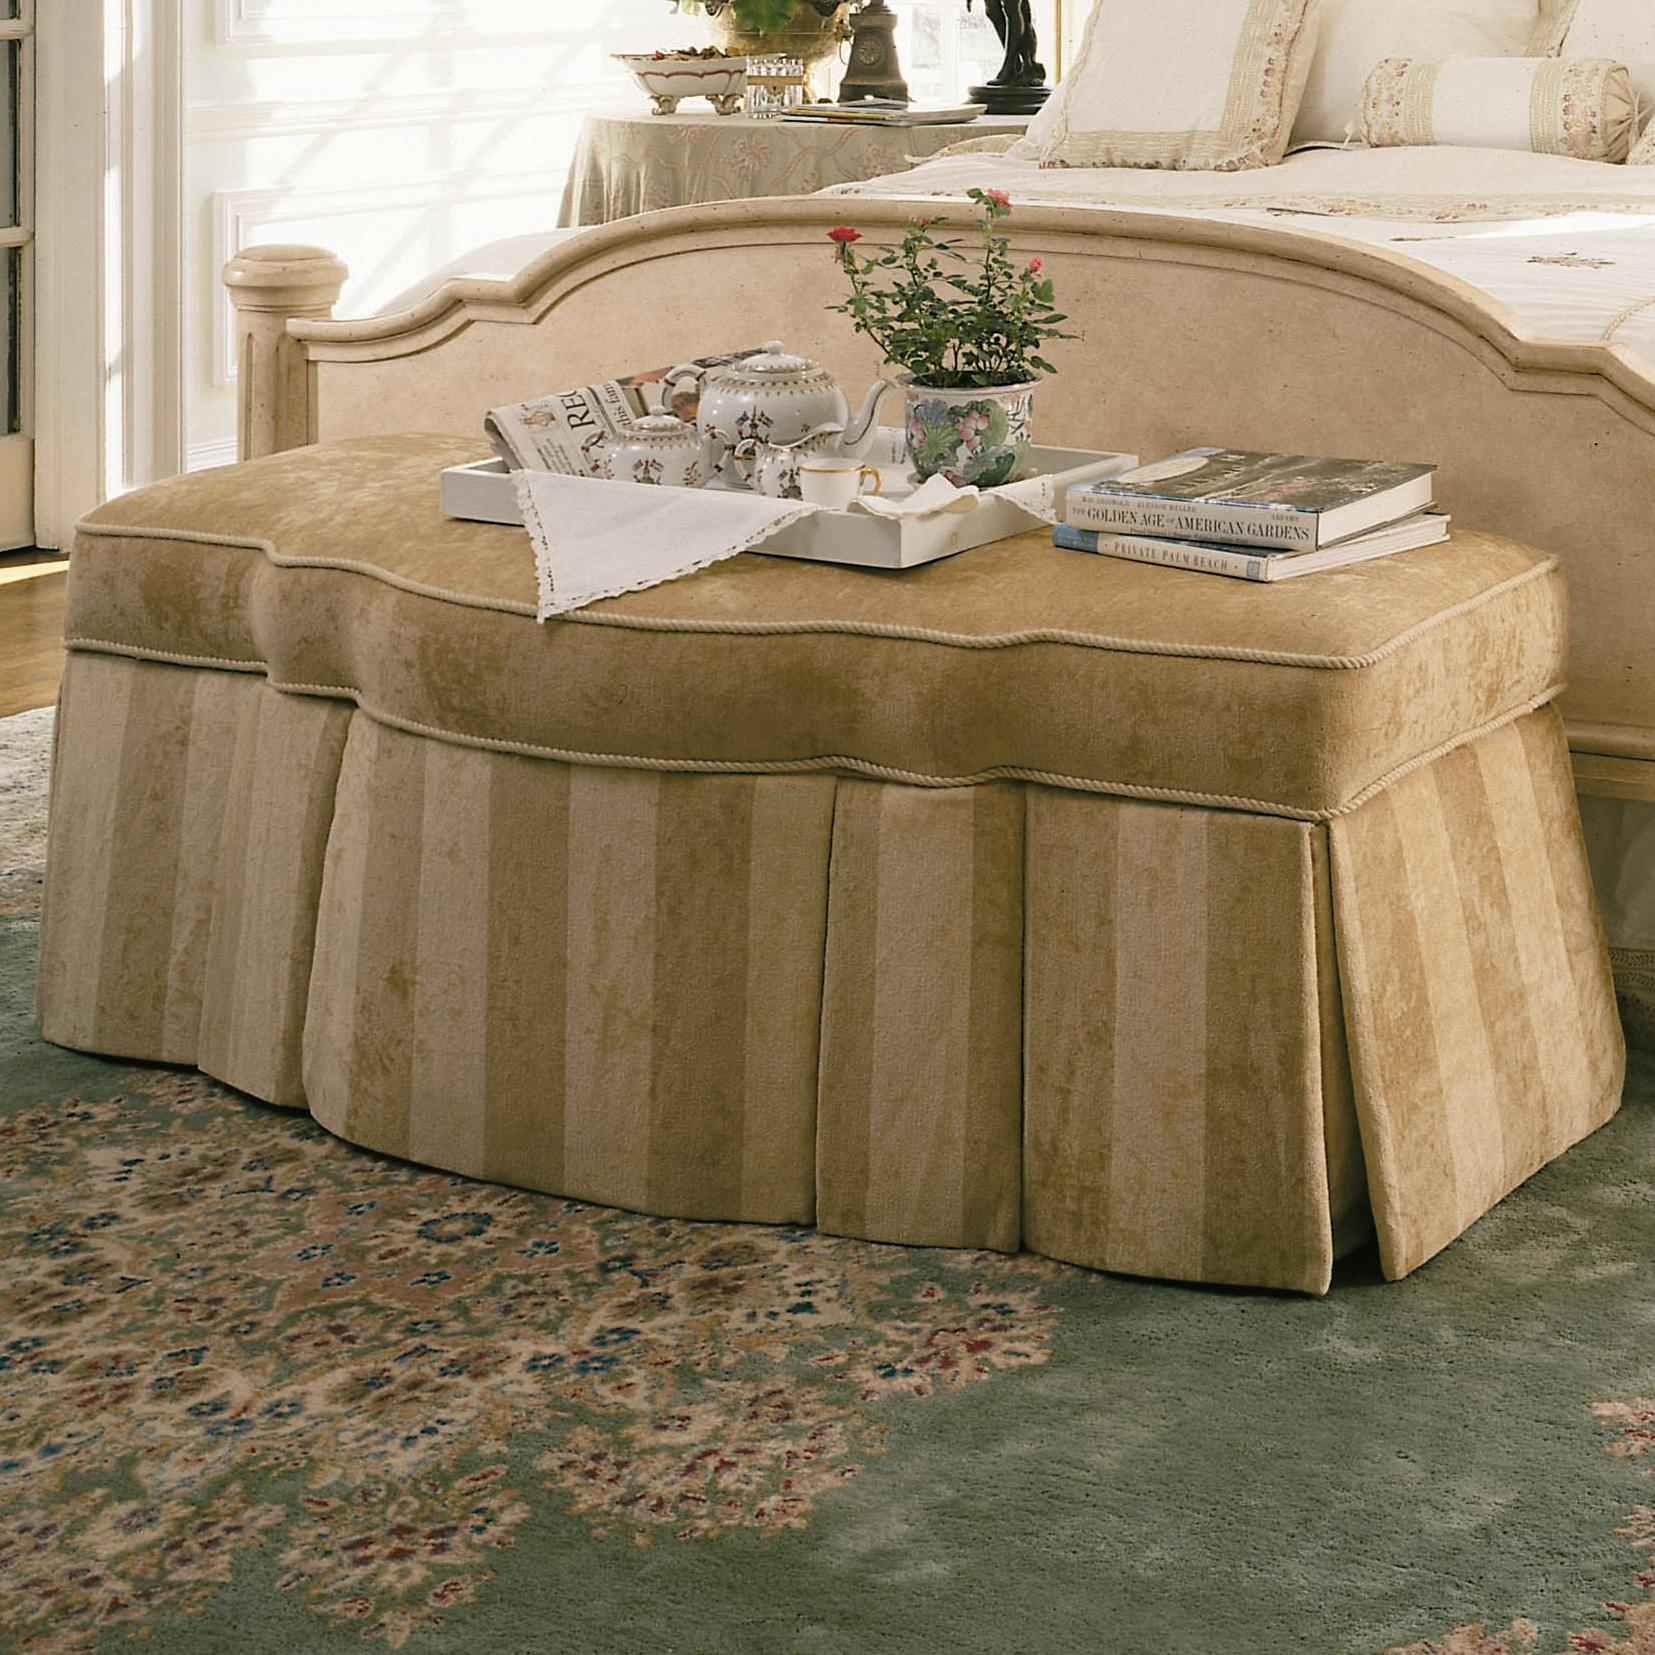 Signature Upholstered Accents Storage Bench by Century at Baer's Furniture